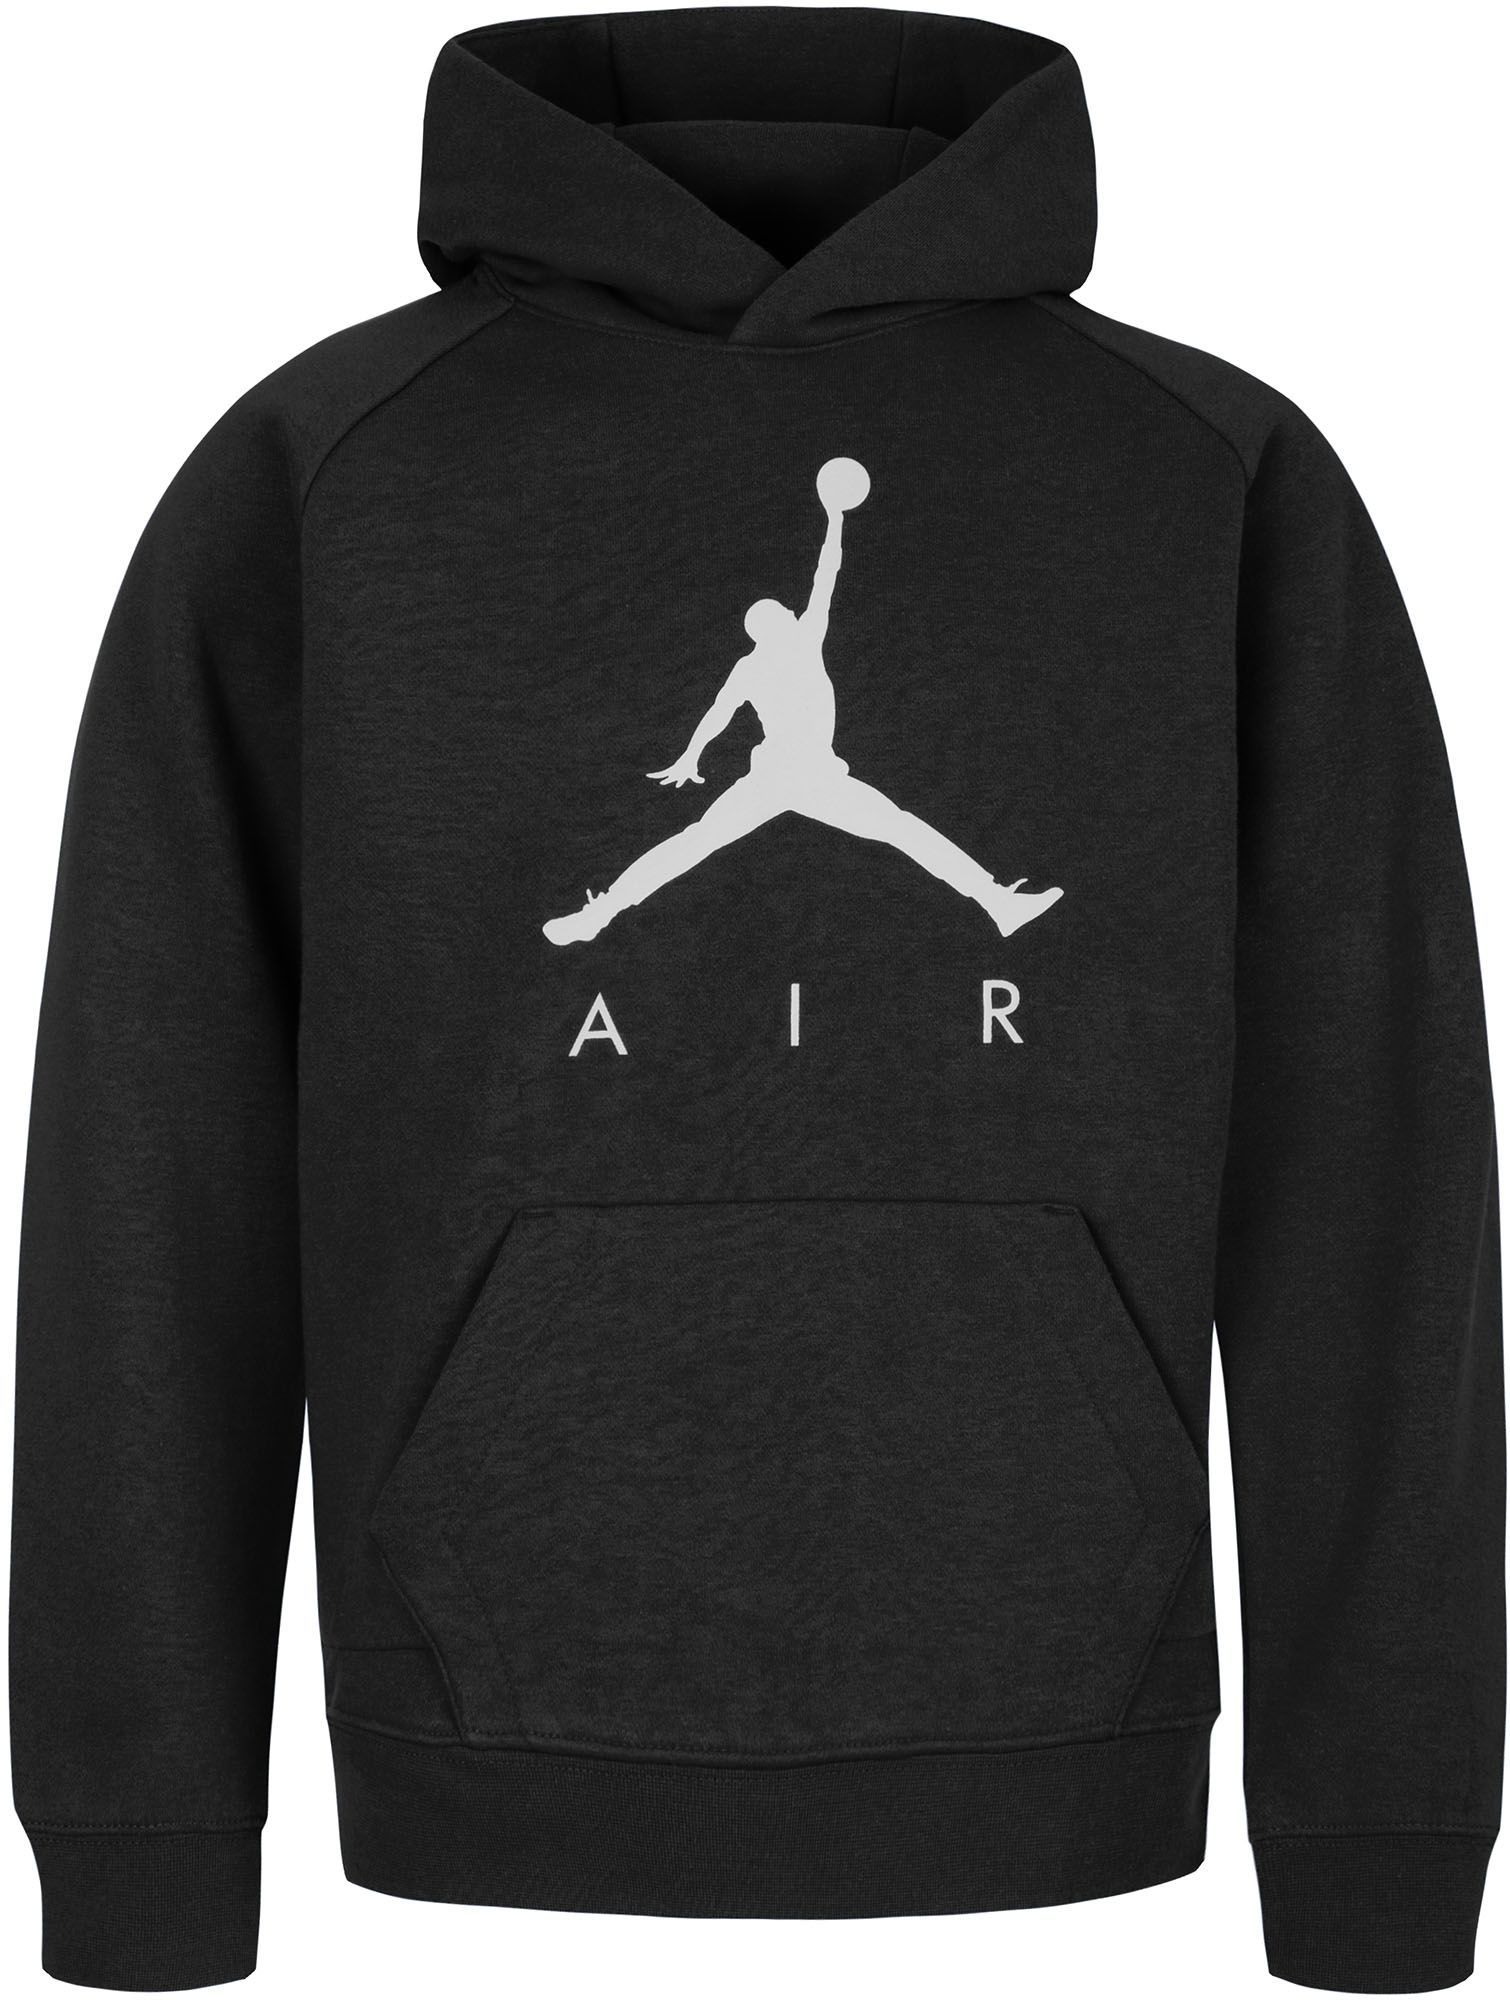 03032dba5b9 Jordan Boys' Fleece Pullover Hoodie, Size: Small, Black in 2019 ...